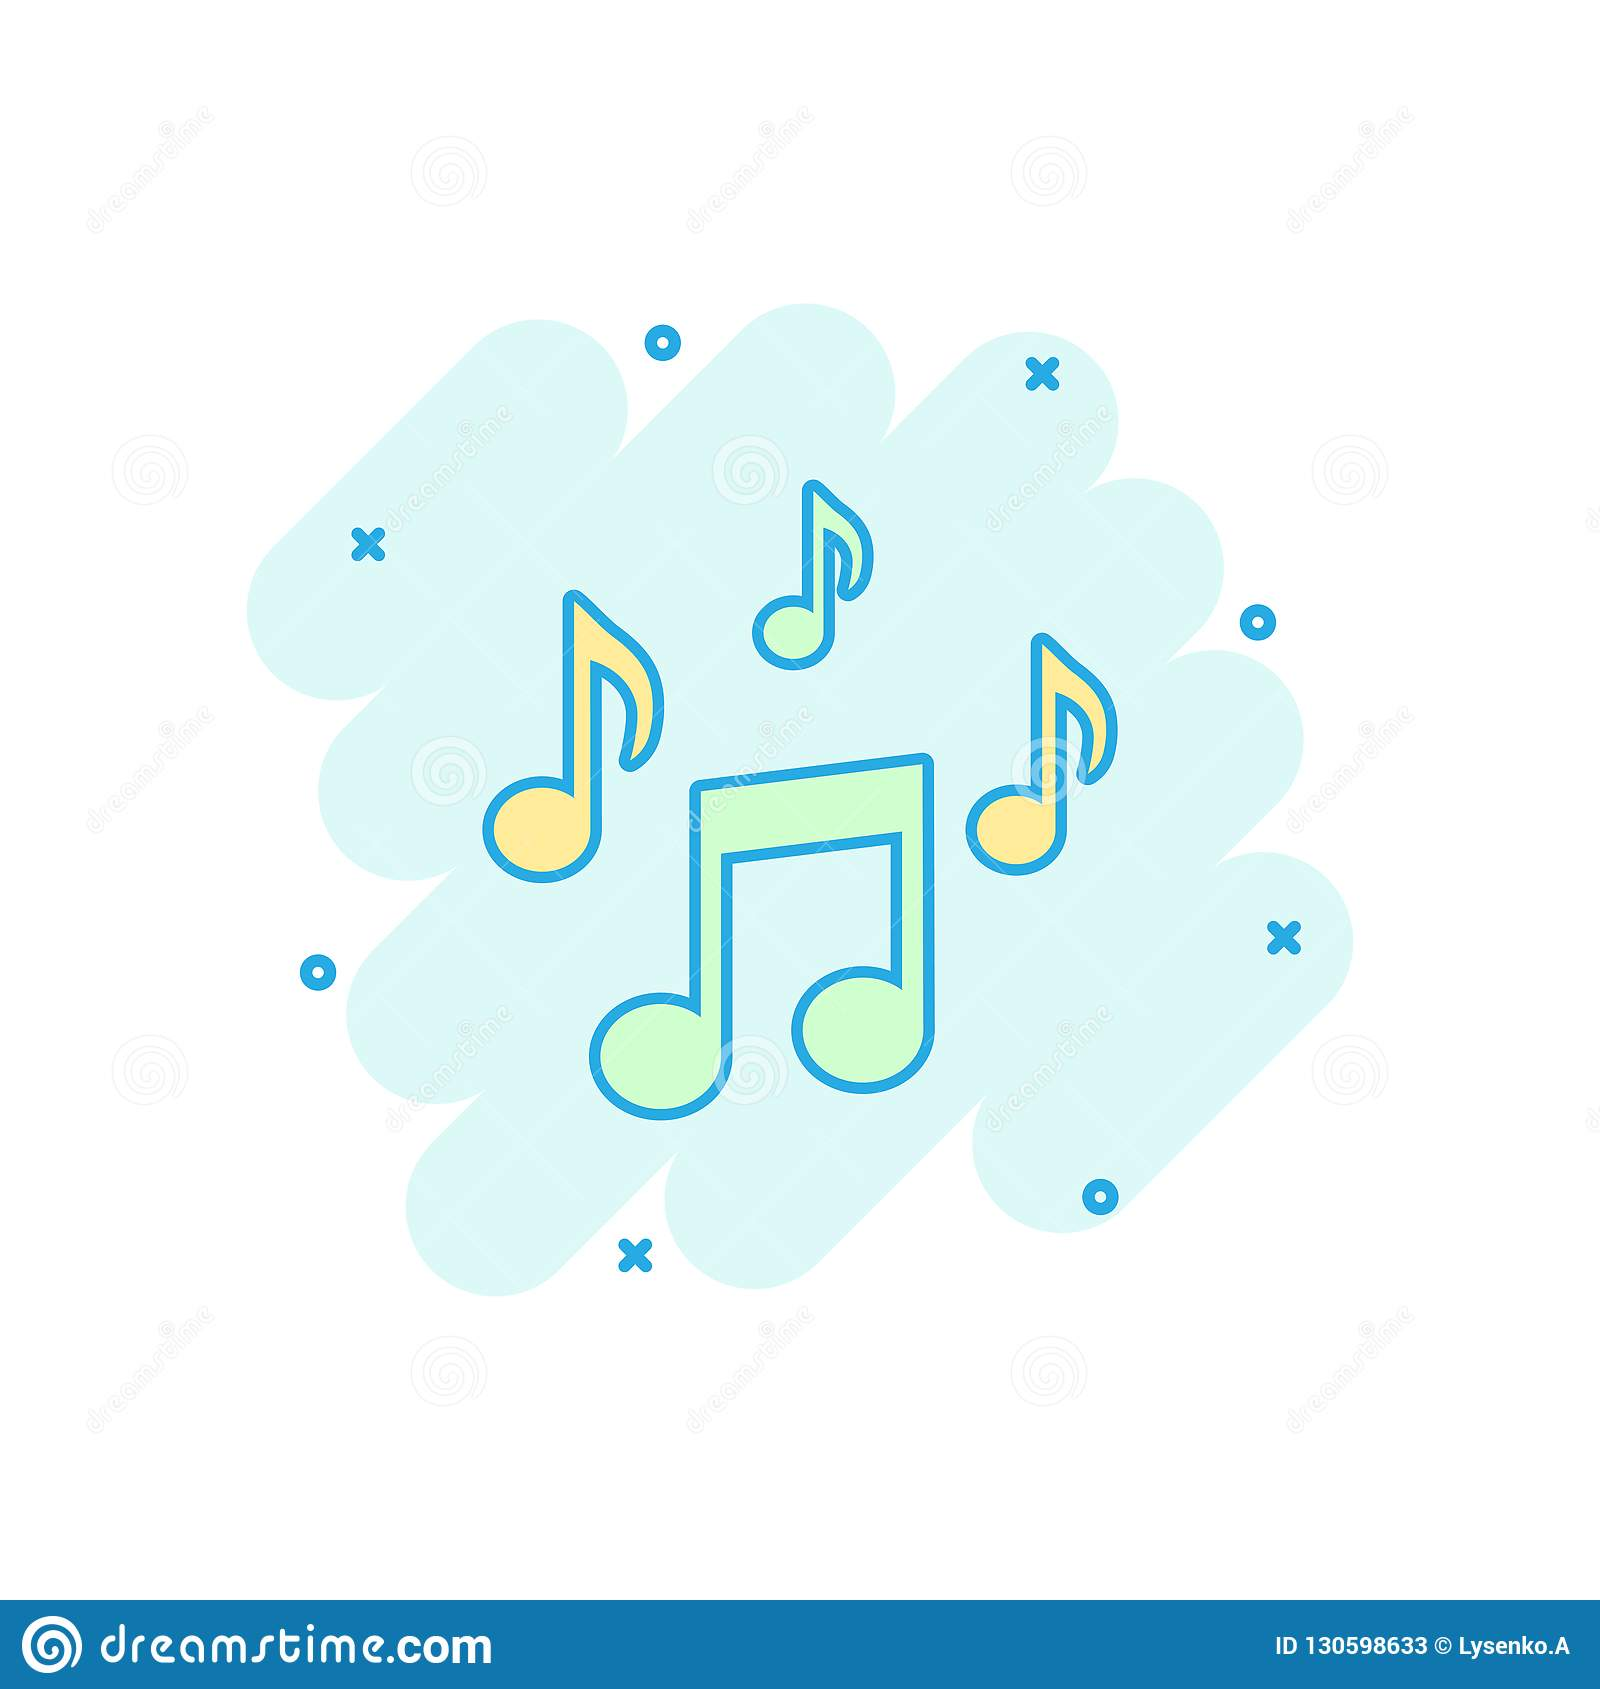 Vector cartoon music note icon in comic style. Sound media concept illustration pictogram. Audio note business splash effect